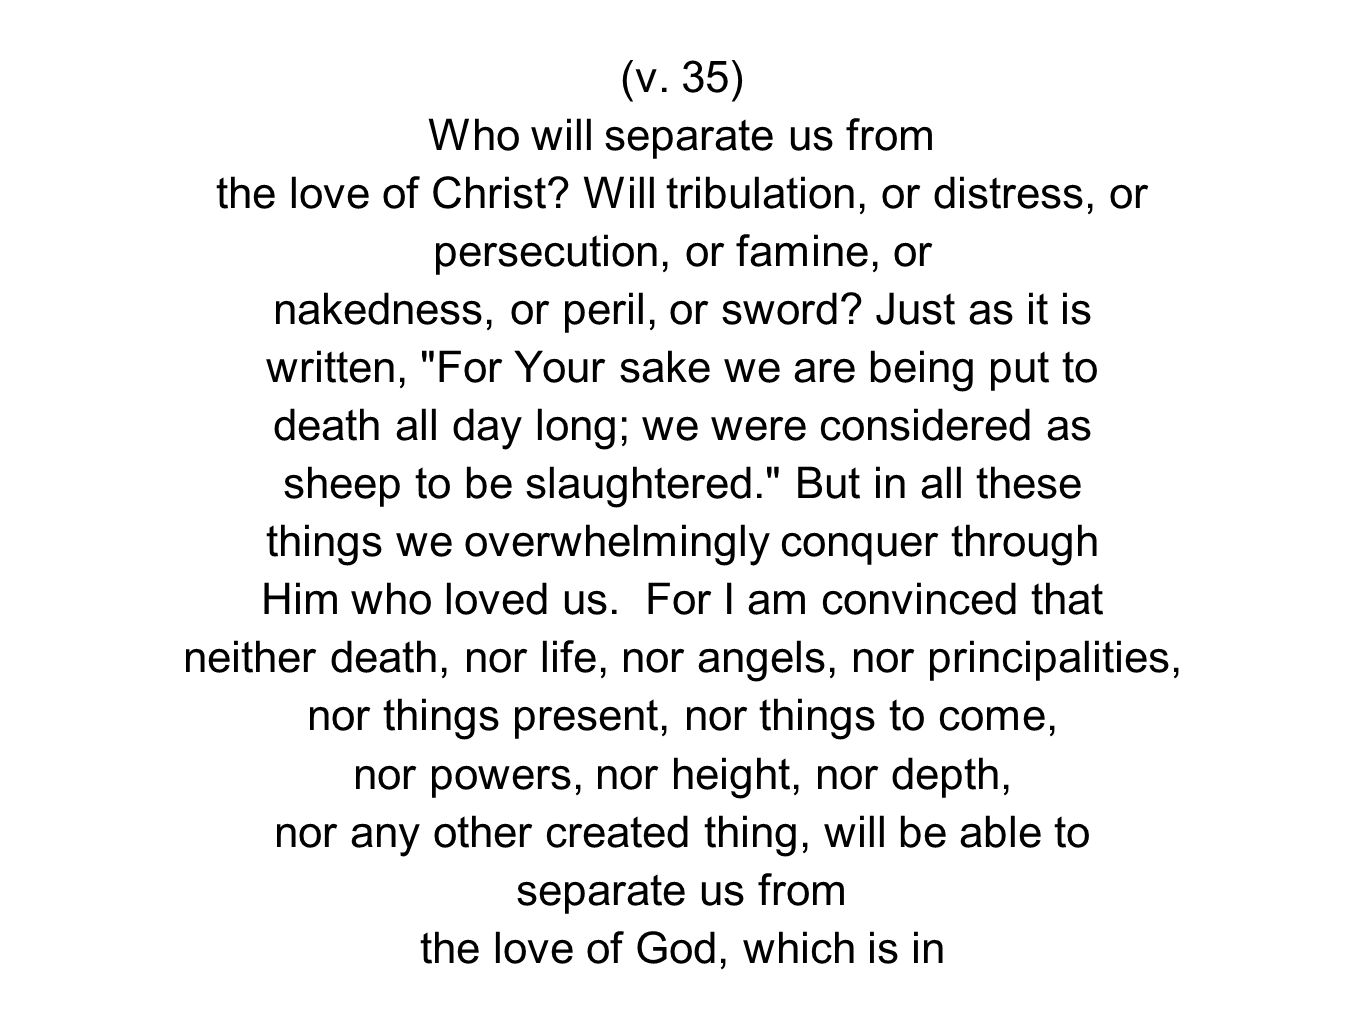 (v. 35) Who will separate us from the love of Christ.